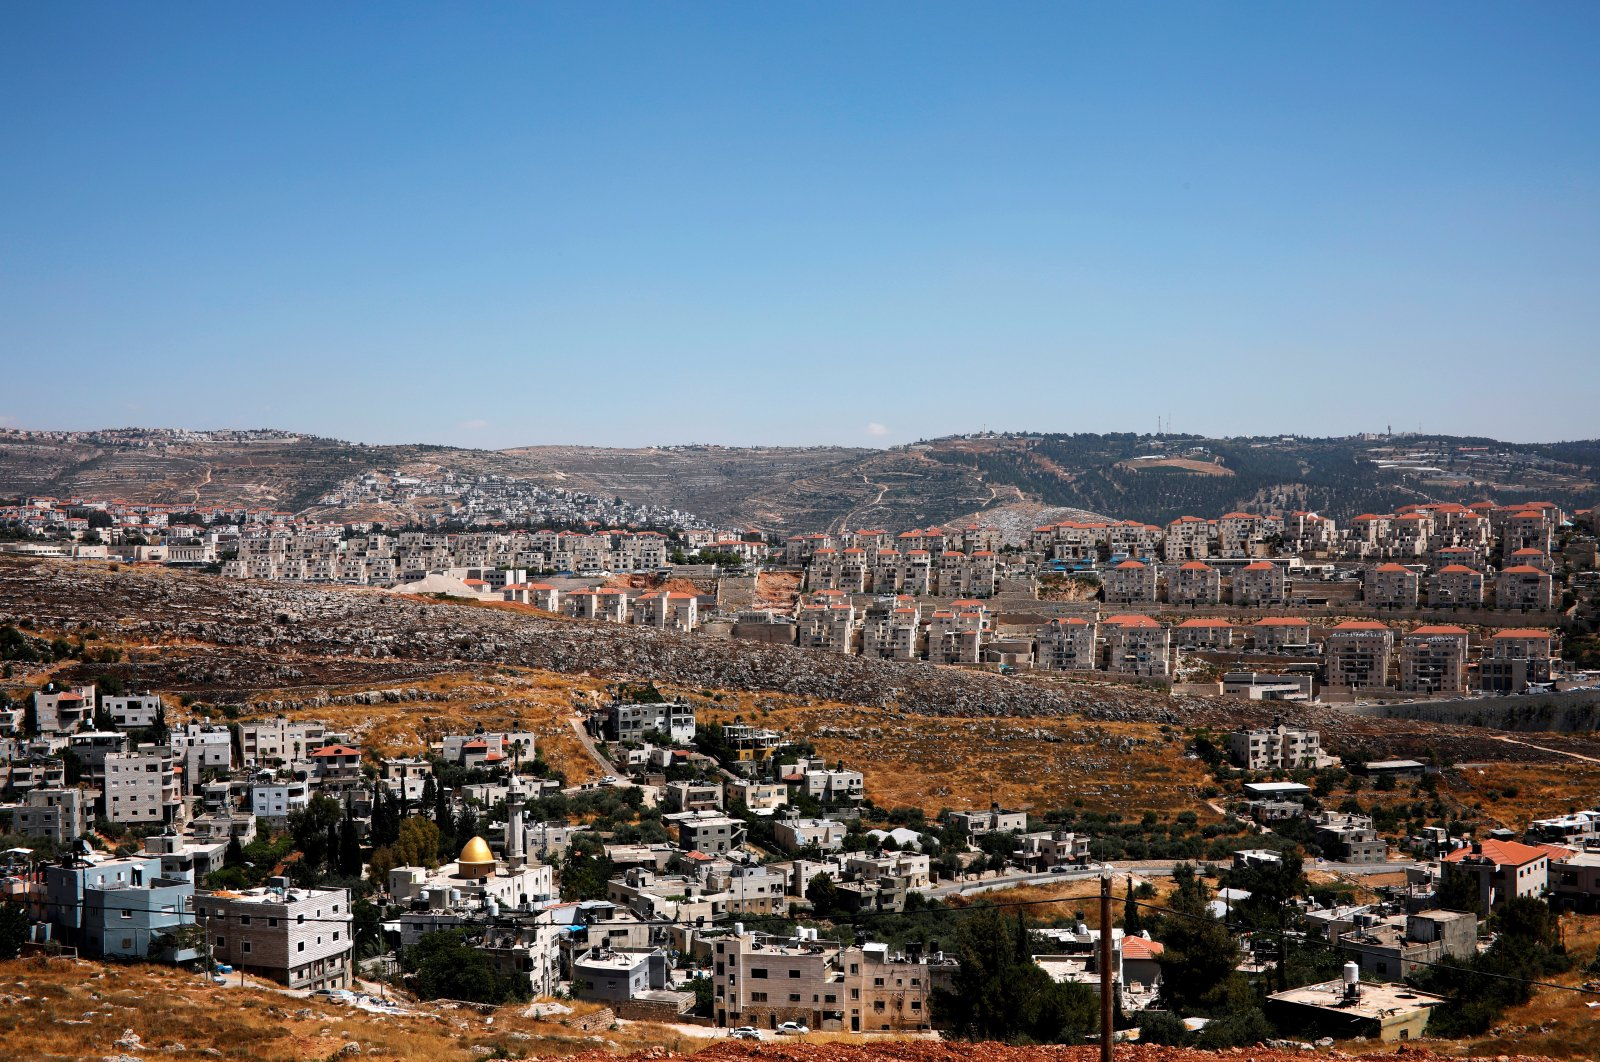 A general view shows Palestinian houses in the village of Wadi Fukin as the Israeli settlement of Beitar Illit is seen in the background in the occupied West Bank, June 19, 2019. (REUTERS Photo)